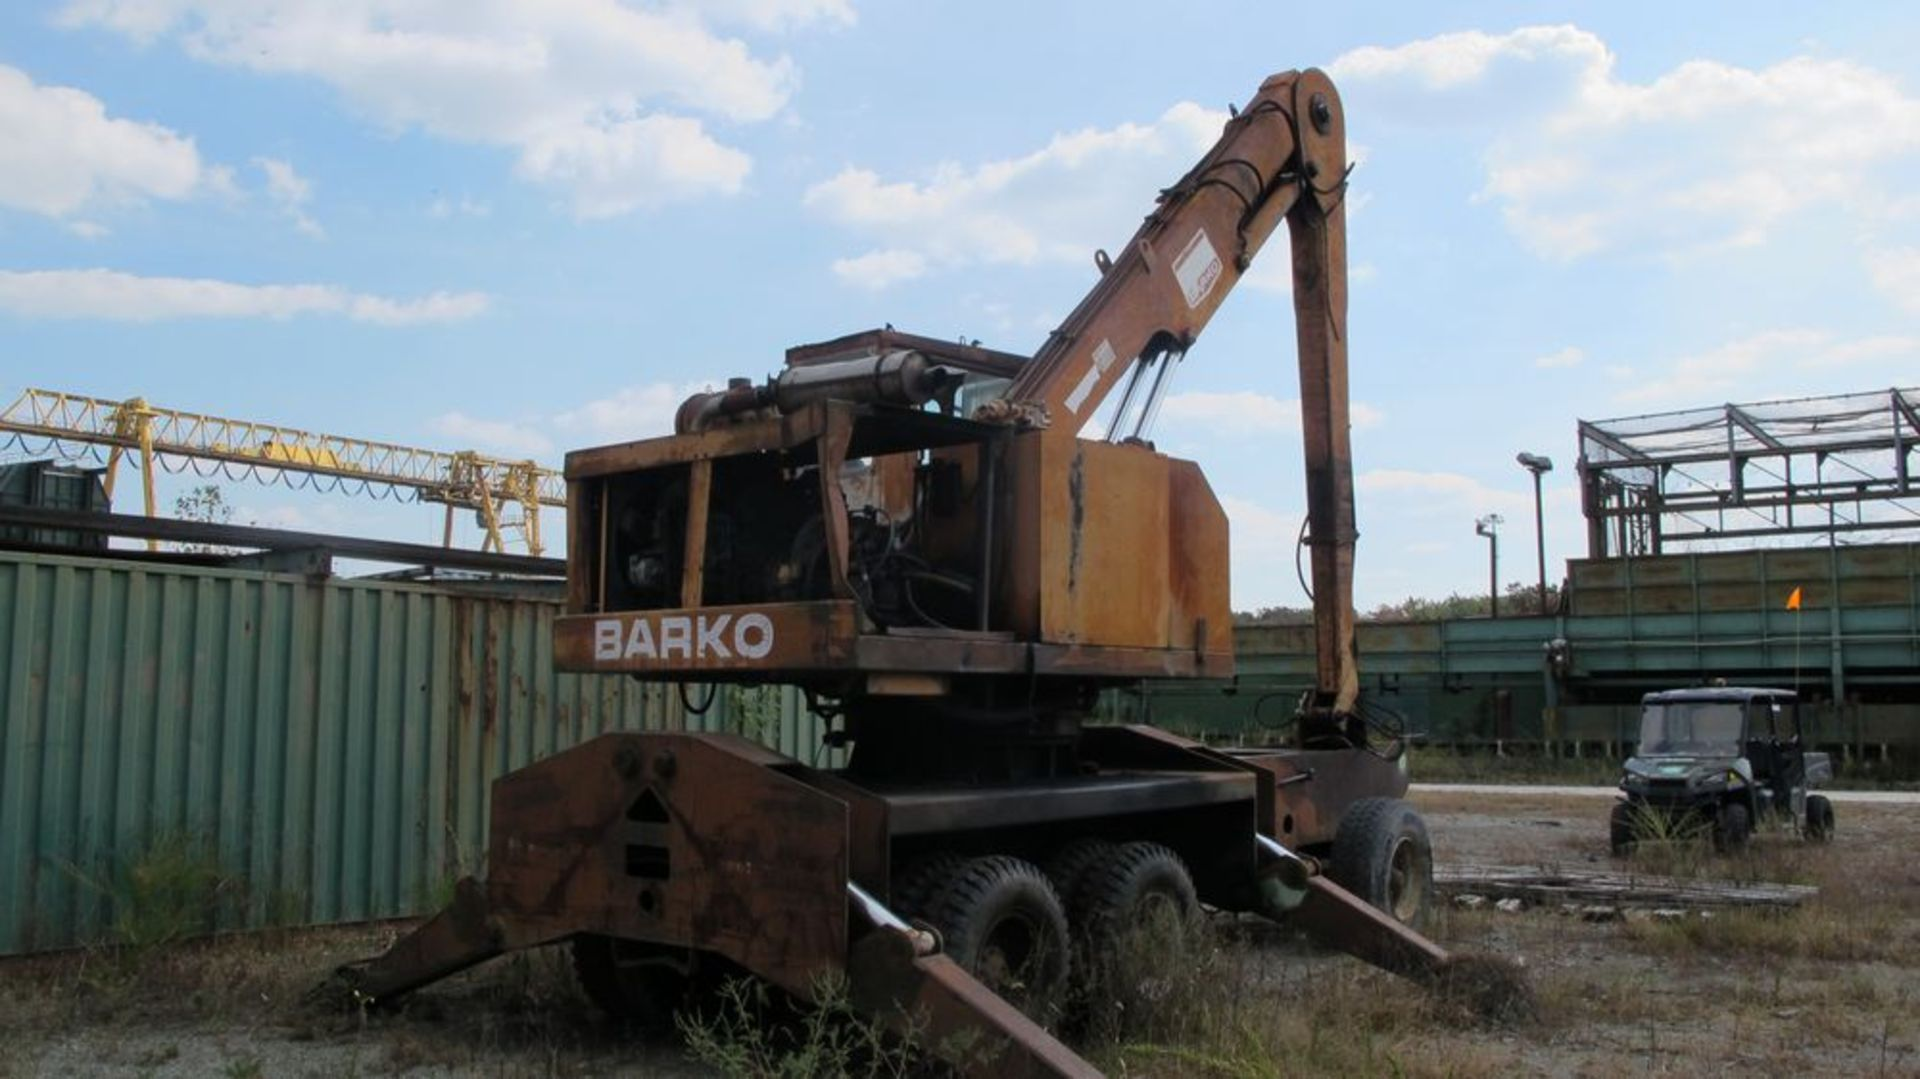 Lot 10 - BARKO 350 KNUCKLE BOOM W/GRAPPLE (WEST WOOD YARD) WHITE MACK TRACTOR 1971 DM-607 YARD TRACTOR, VIN